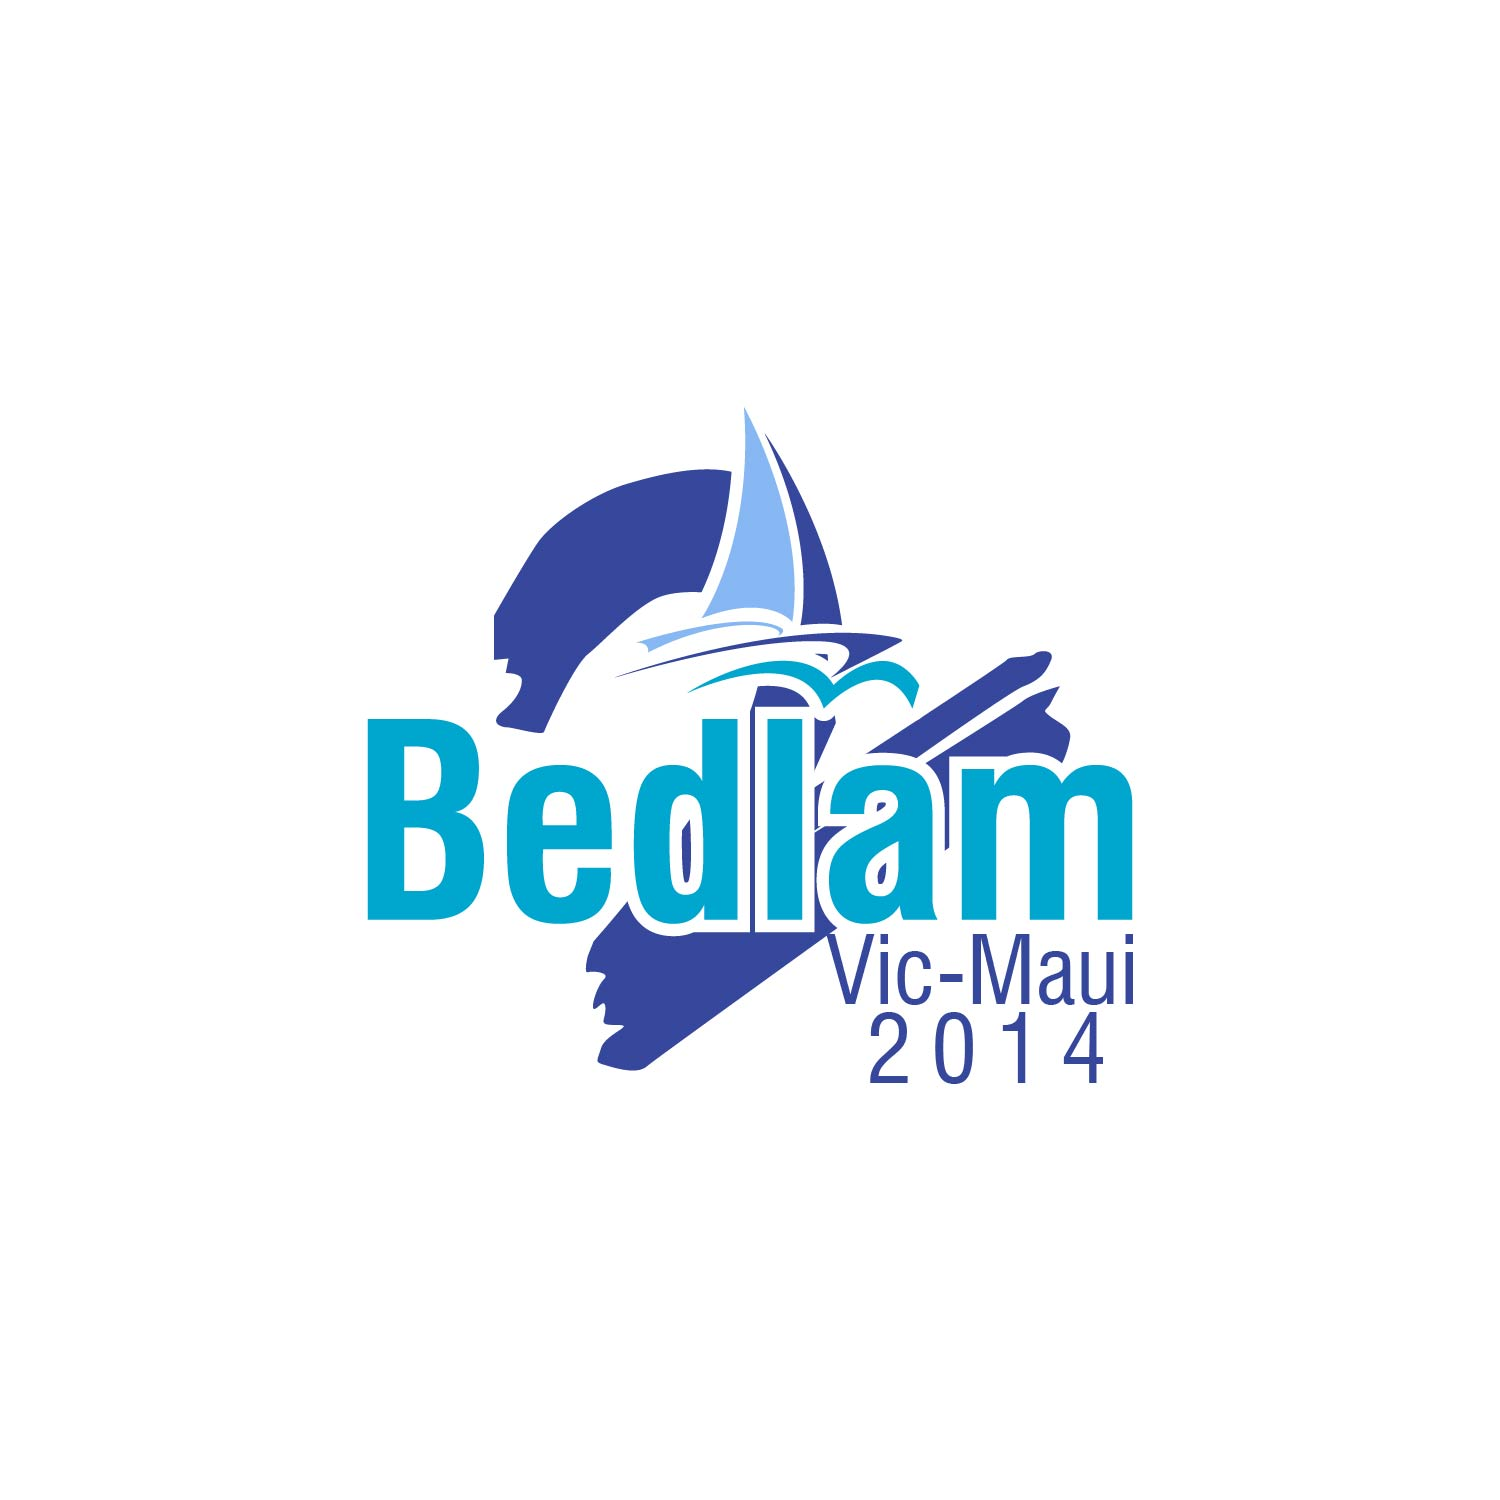 Logo Design by lagalag - Entry No. 31 in the Logo Design Contest Artistic Logo Design for Bedlam 2  Vic-Maui 2014.